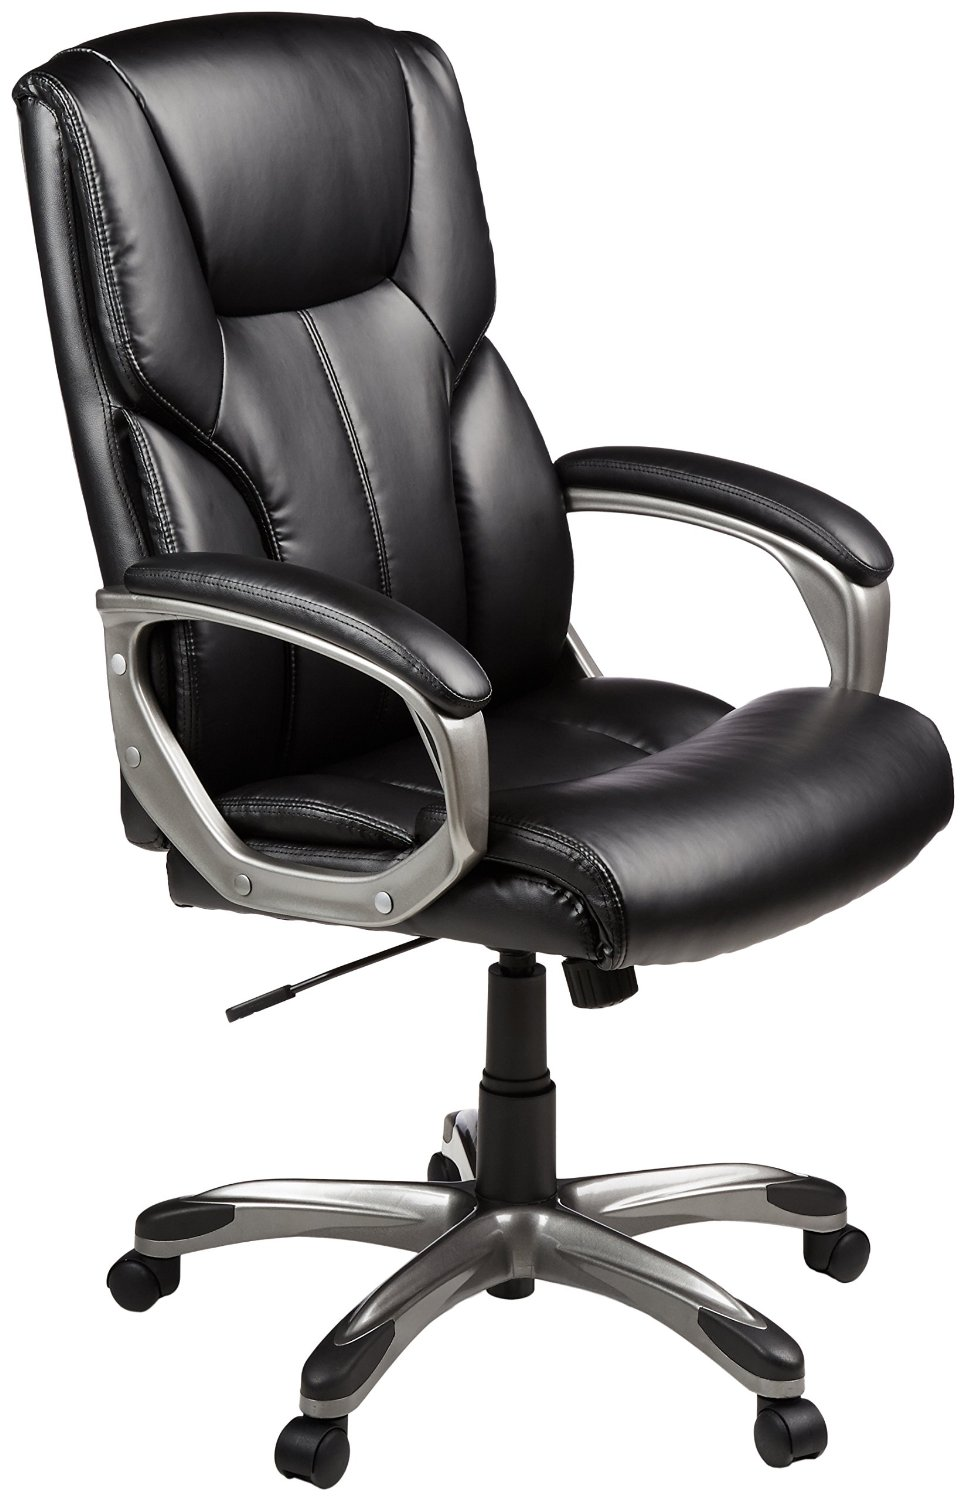 Best office chair 2016 - Amazonbasics High Back Executive Chair